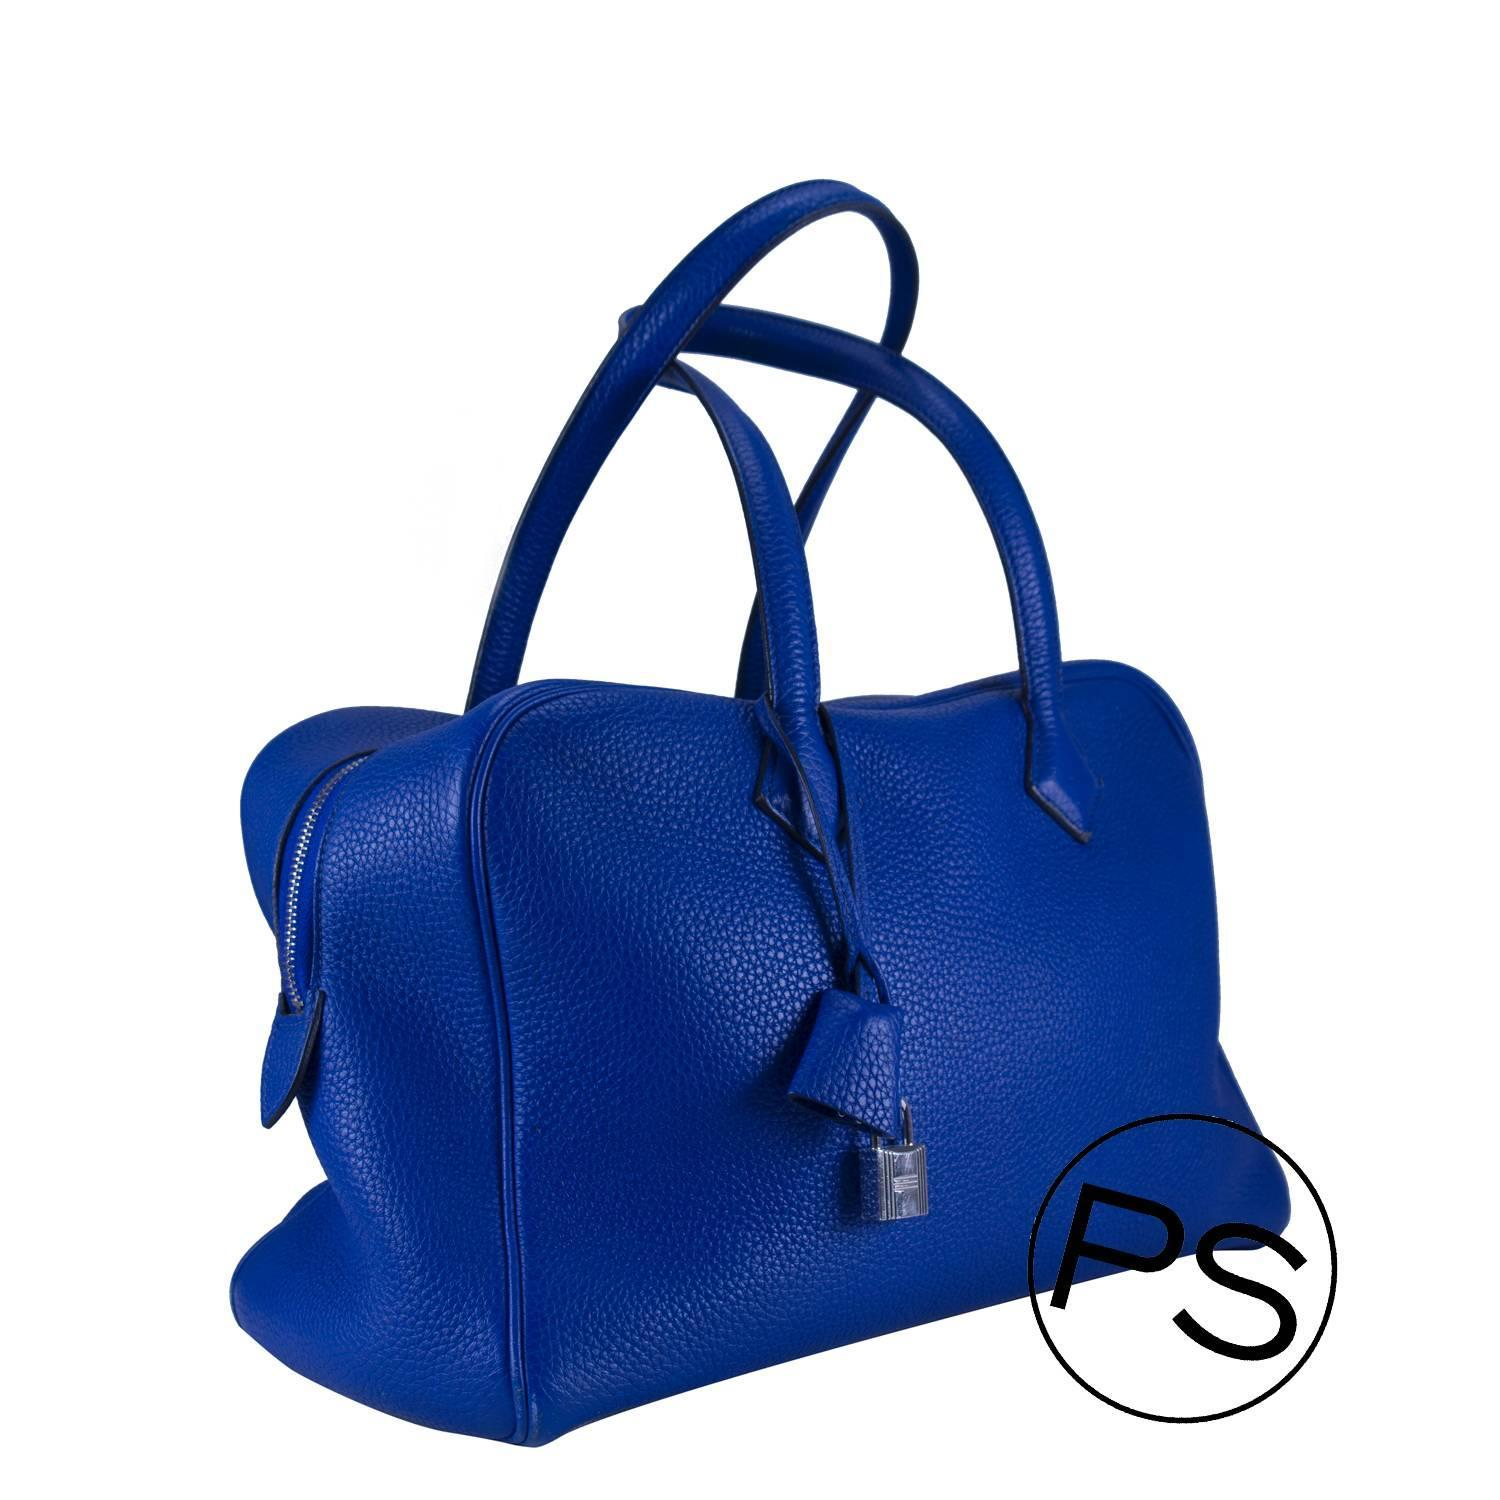 Hermes Handbag Victoria II Blue 2013 at 1stdibs